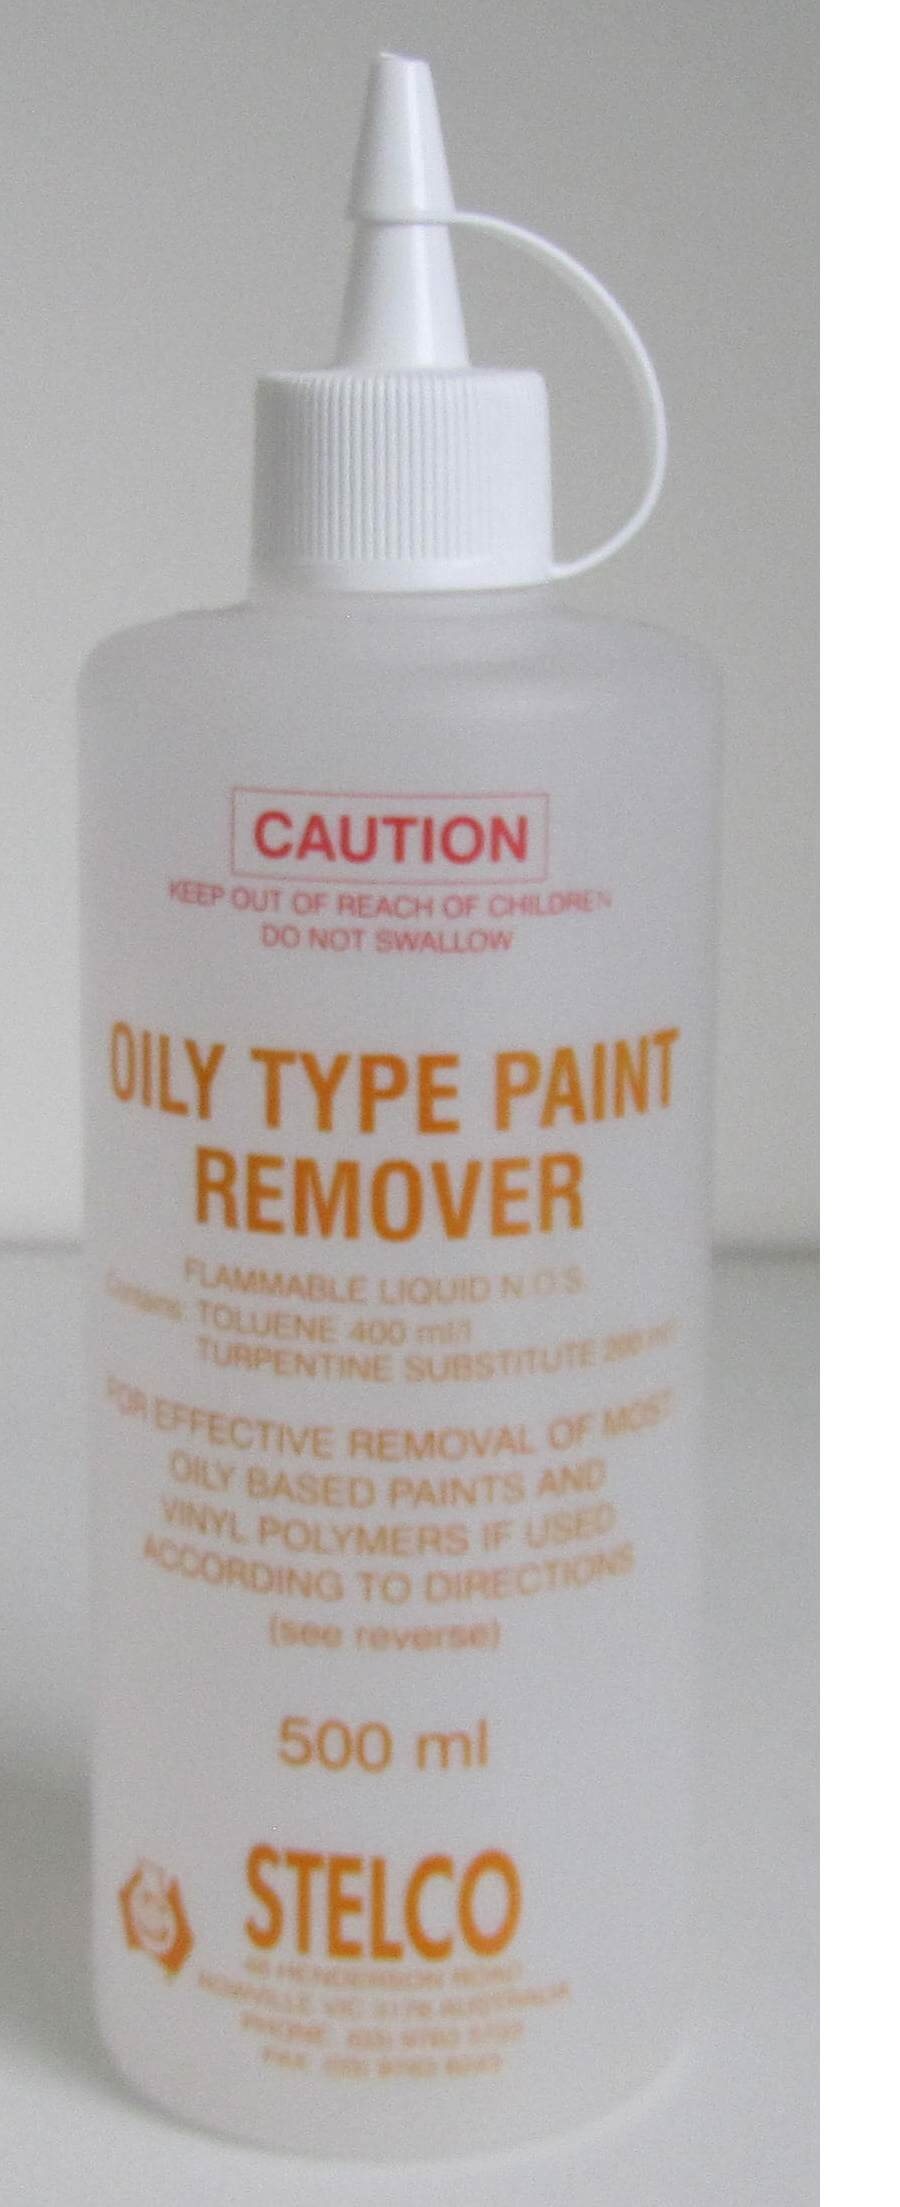 Stelco Oily Type Paint Remover 5 litres